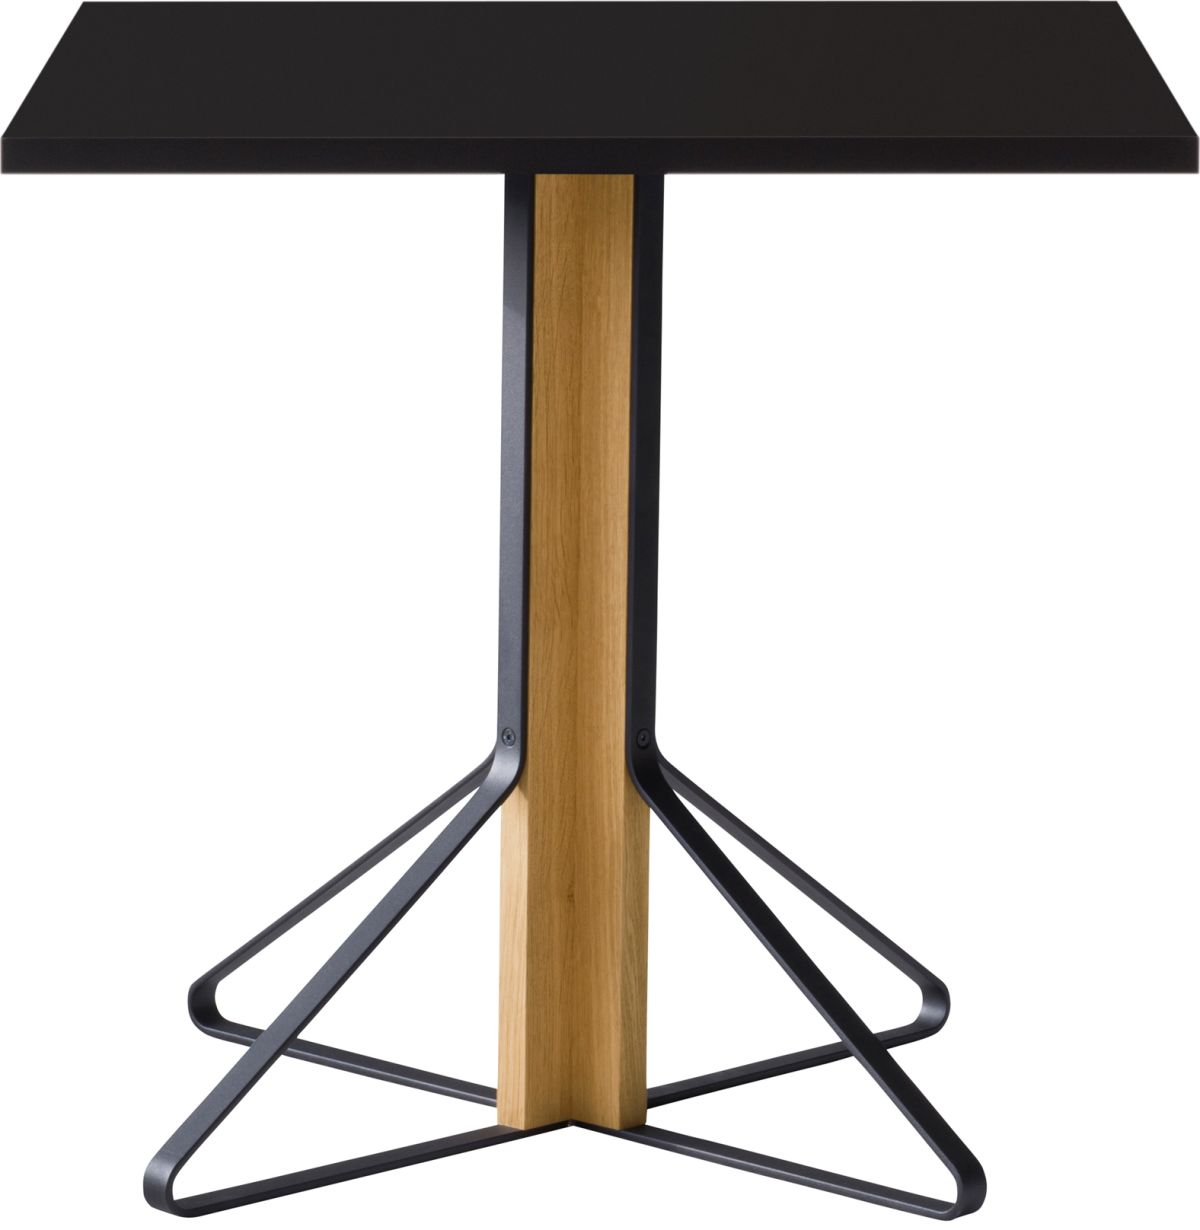 Kaari_Table_square_legs natural oak_top black HPL